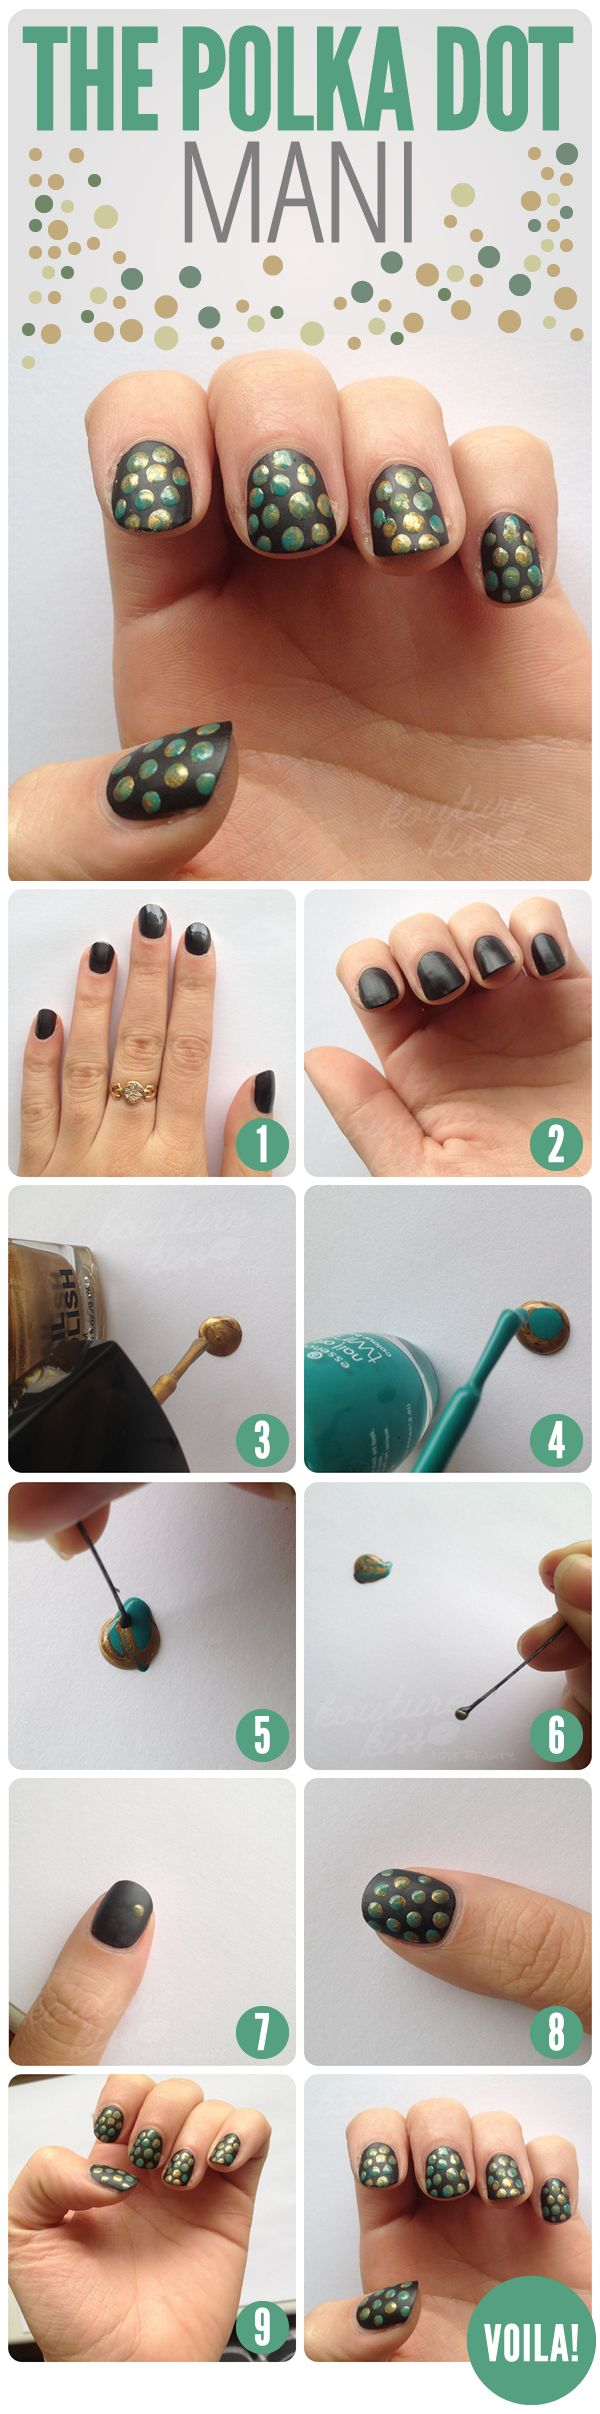 10 Easy Step By Step Nail Art Tutorials For 2017 Pretty Designs